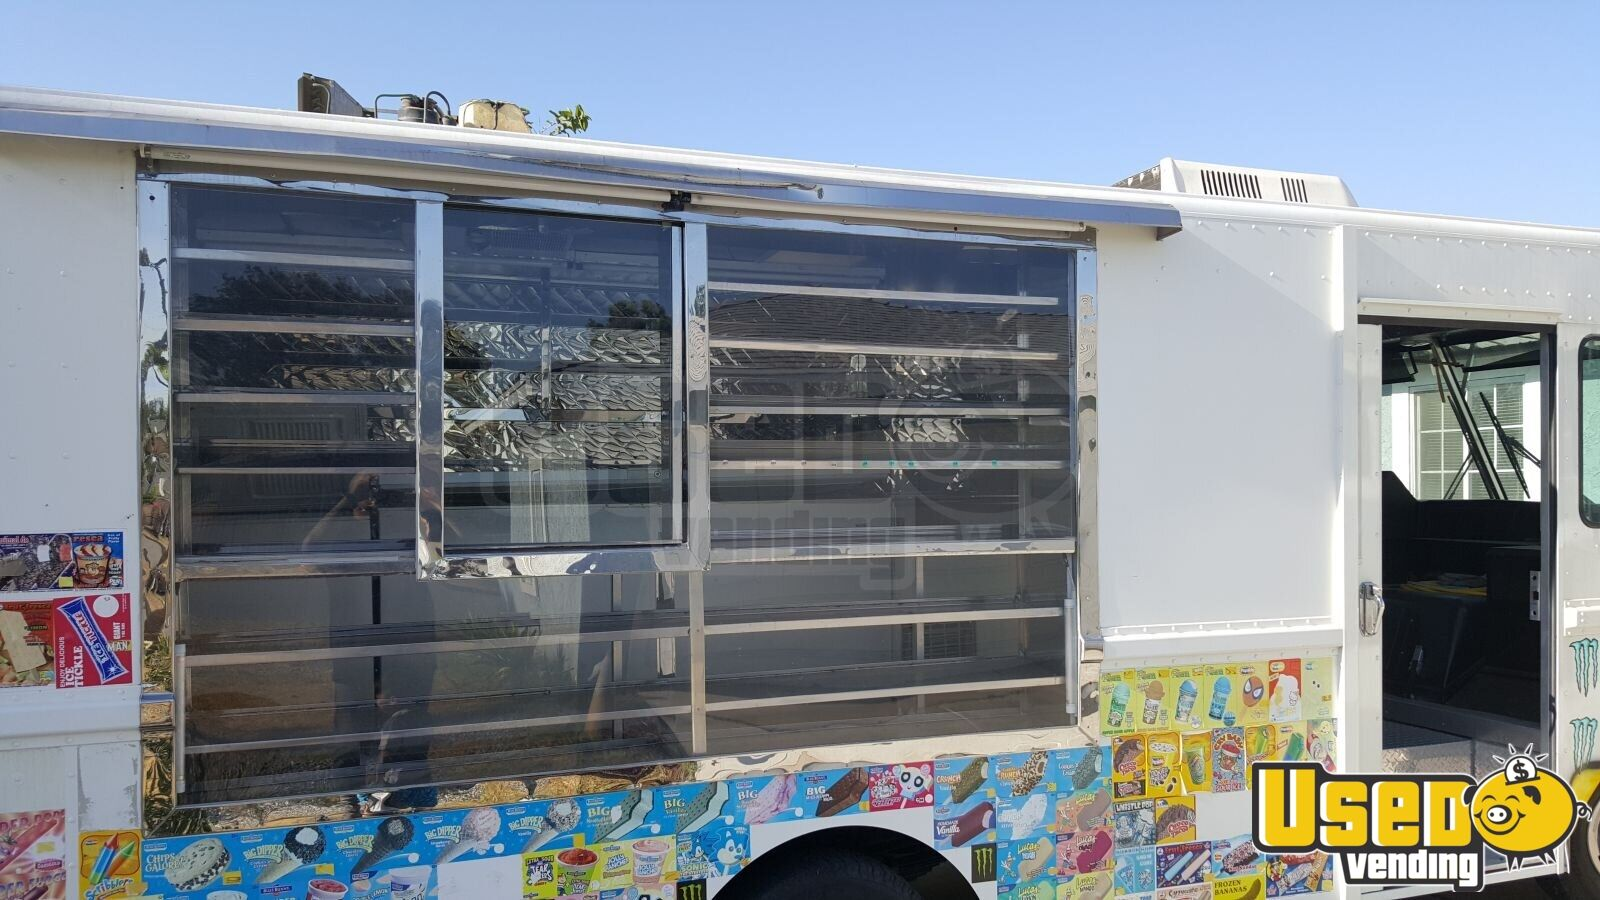 1997 Chevy Ice Cream Truck Deep Freezer California Gas Engine for Sale - 5